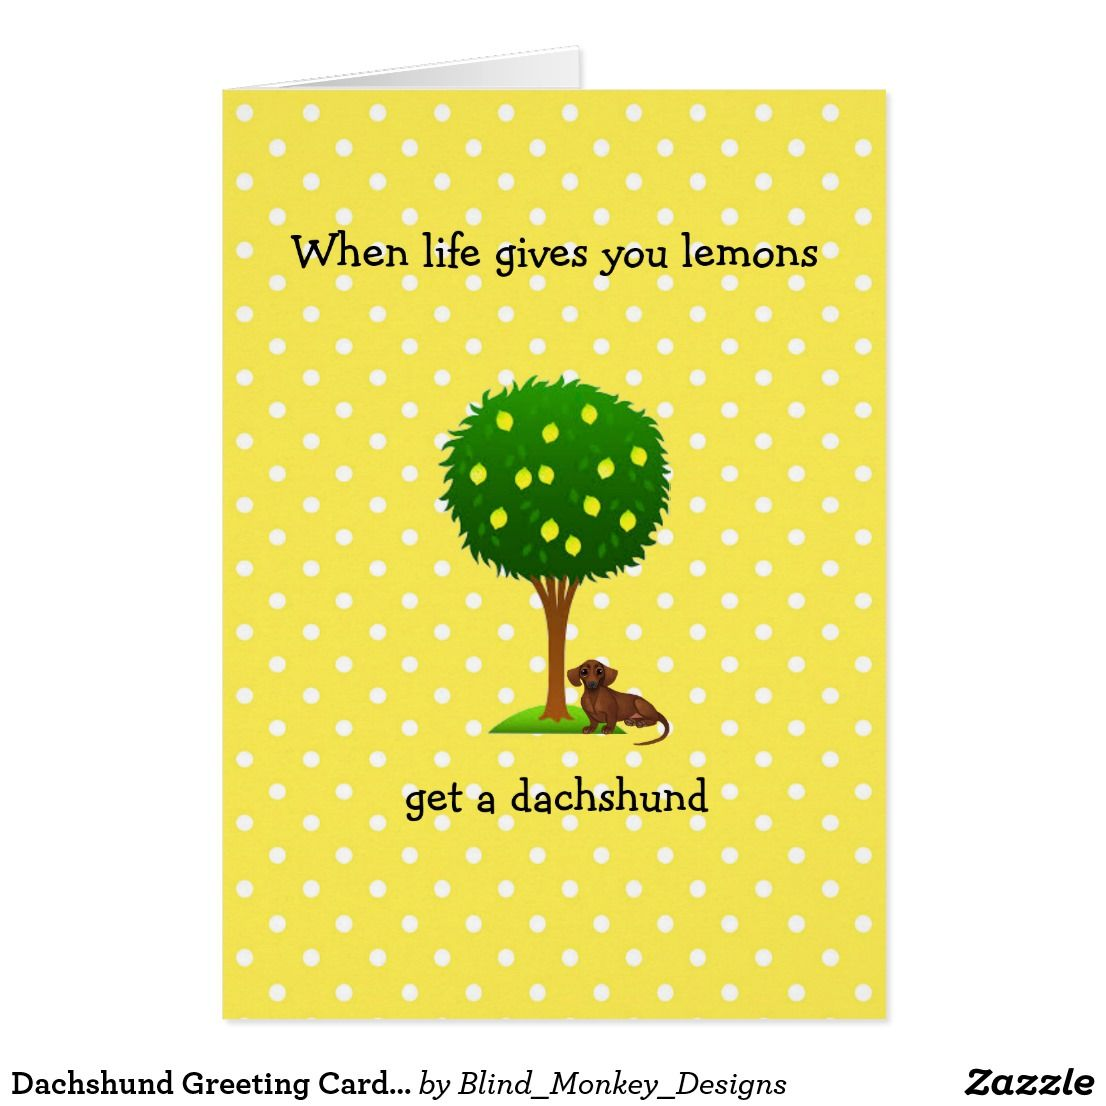 Dachshund greeting card when life gives you lemons dachshunds dachshund greeting card when life gives you lemons m4hsunfo